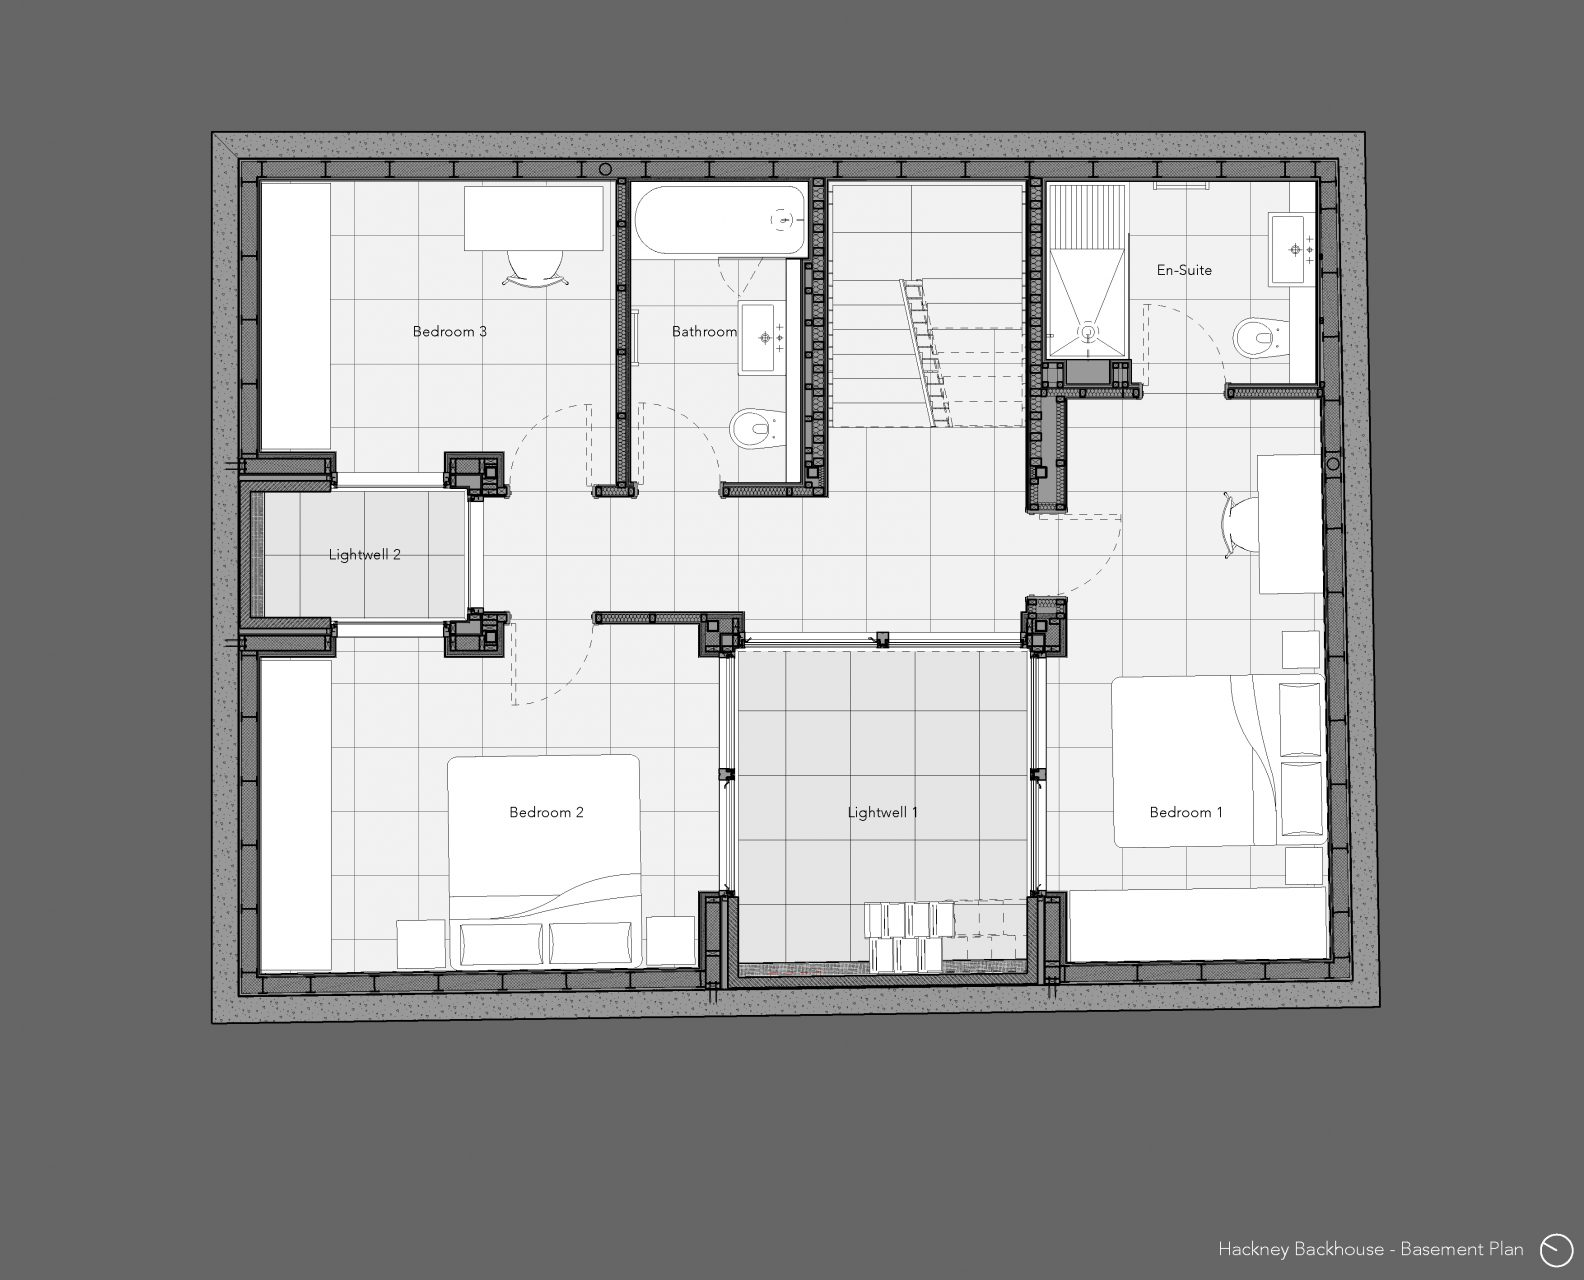 Hackney Backhouse – Basement Plan